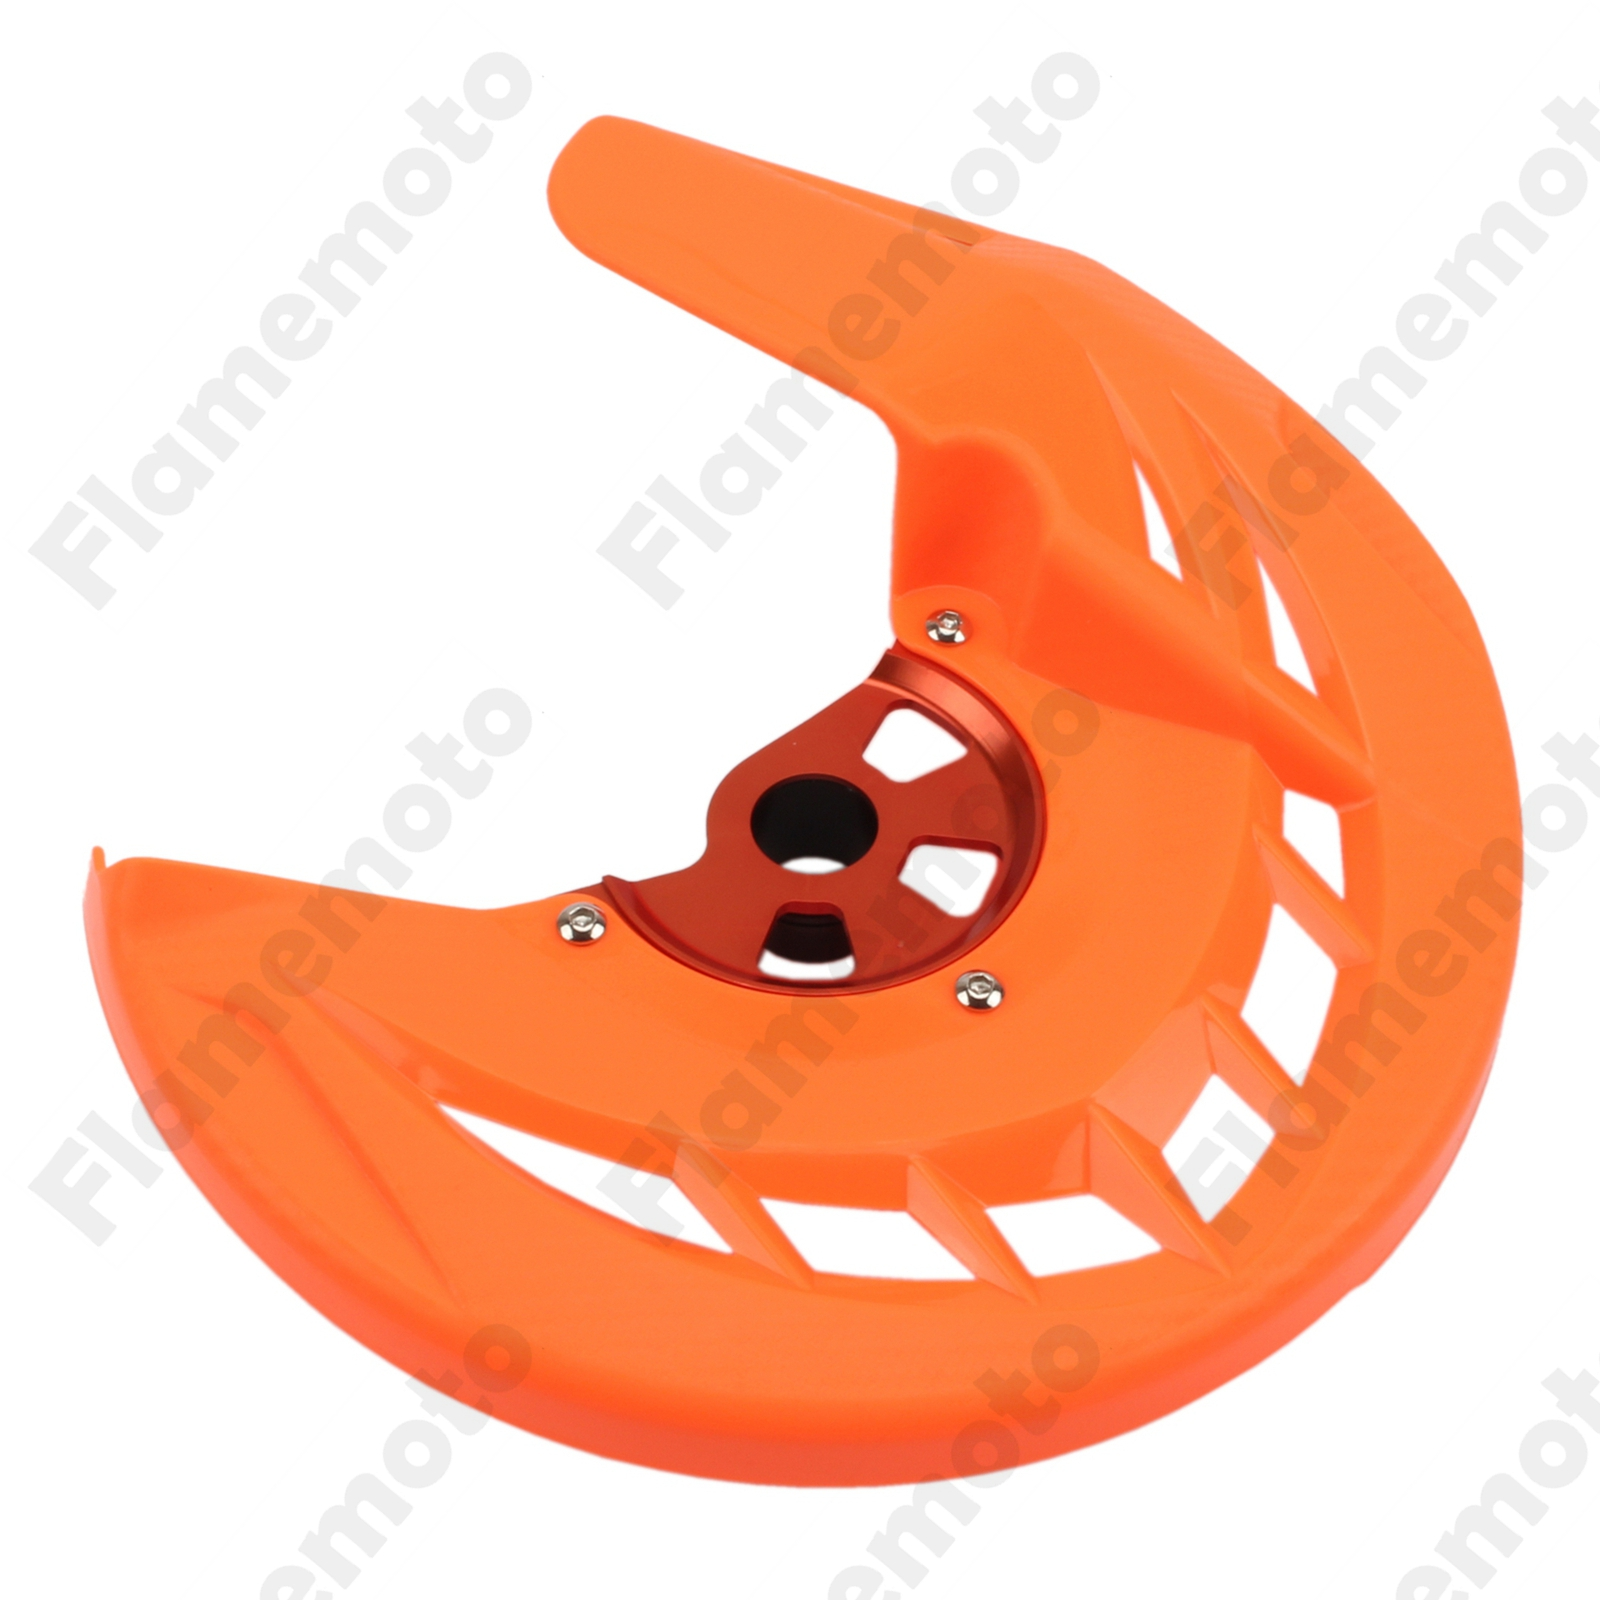 Orange Motorcycle Accessories Front Brake Disc Guard Cover For 2003 2004 2005 2006-2013 2014 2015 KTM 125-530 300 350 EXC EXC-F mfs motor motorcycle part front rear brake discs rotor for yamaha yzf r6 2003 2004 2005 yzfr6 03 04 05 gold